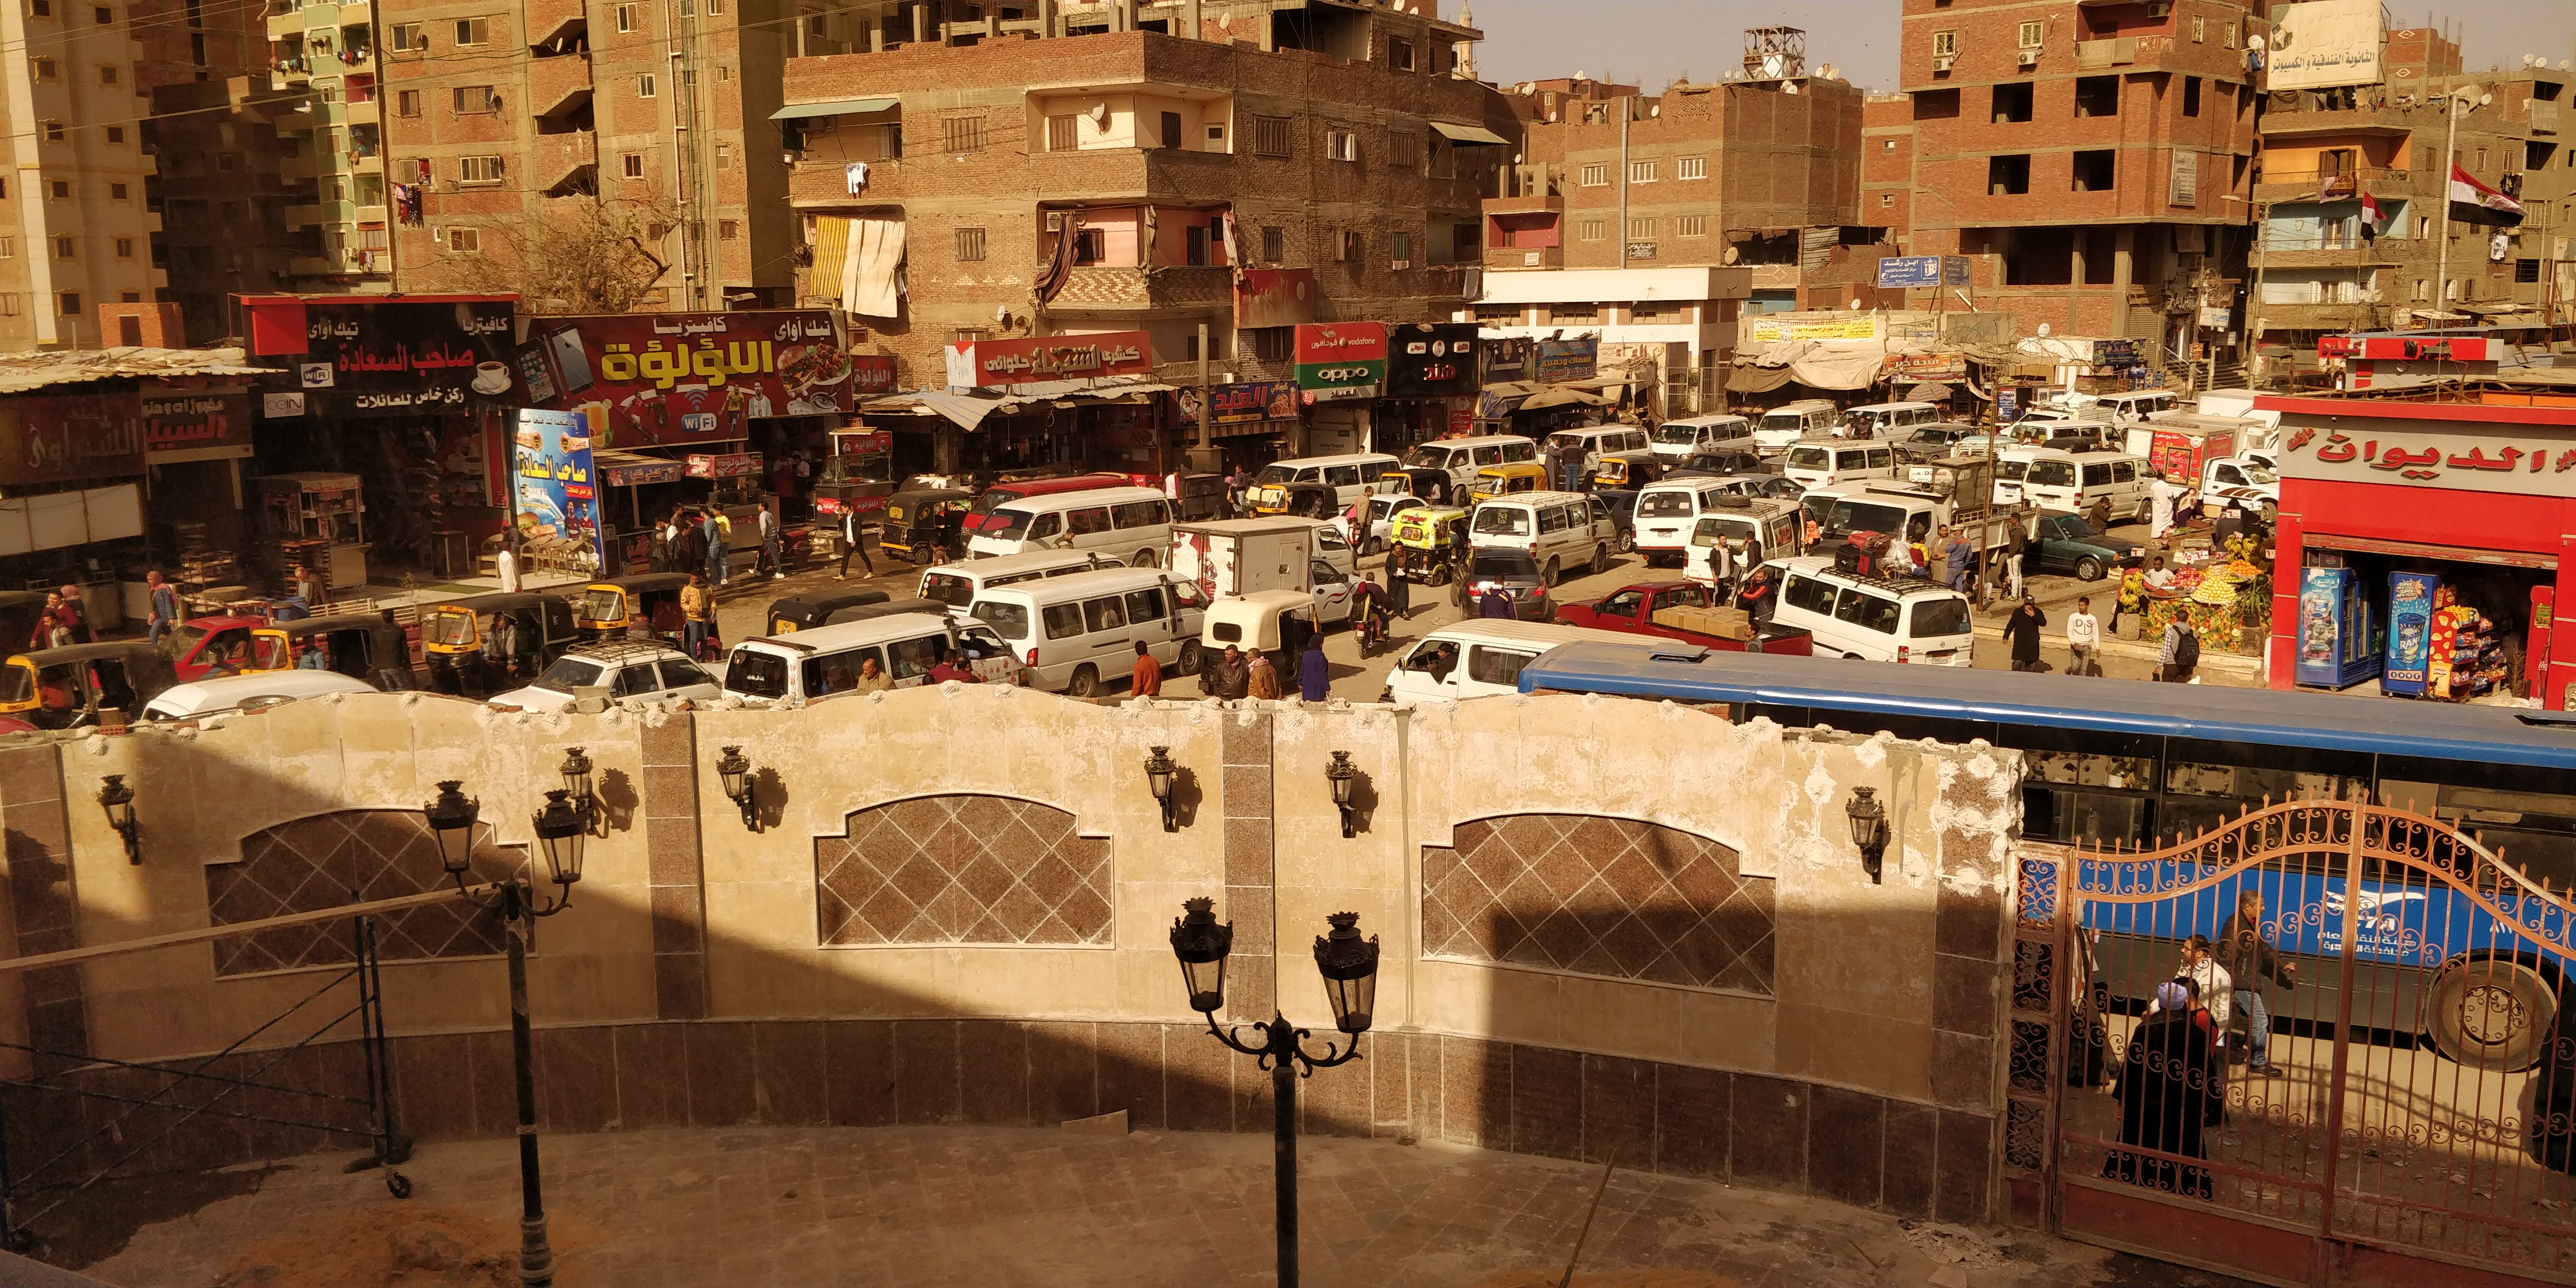 Technical Cooperation Egypt – Intermodality challenges: the case of two metro stations in Cairo